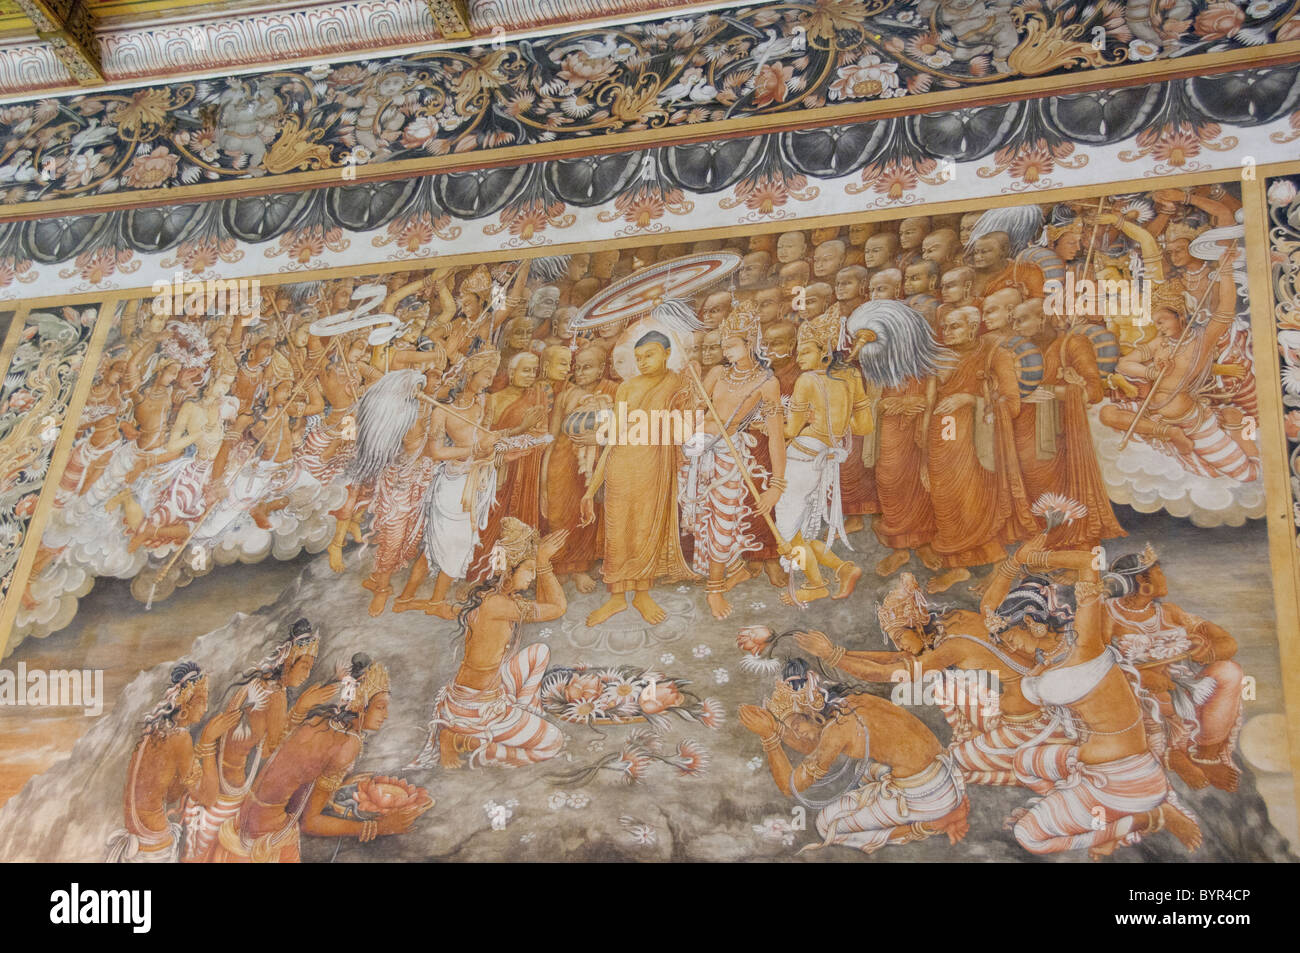 sri lanka colombo kelaniya temple important buddhist religious sri lanka colombo kelaniya temple important buddhist religious center temple interior historic hand painted wall mural